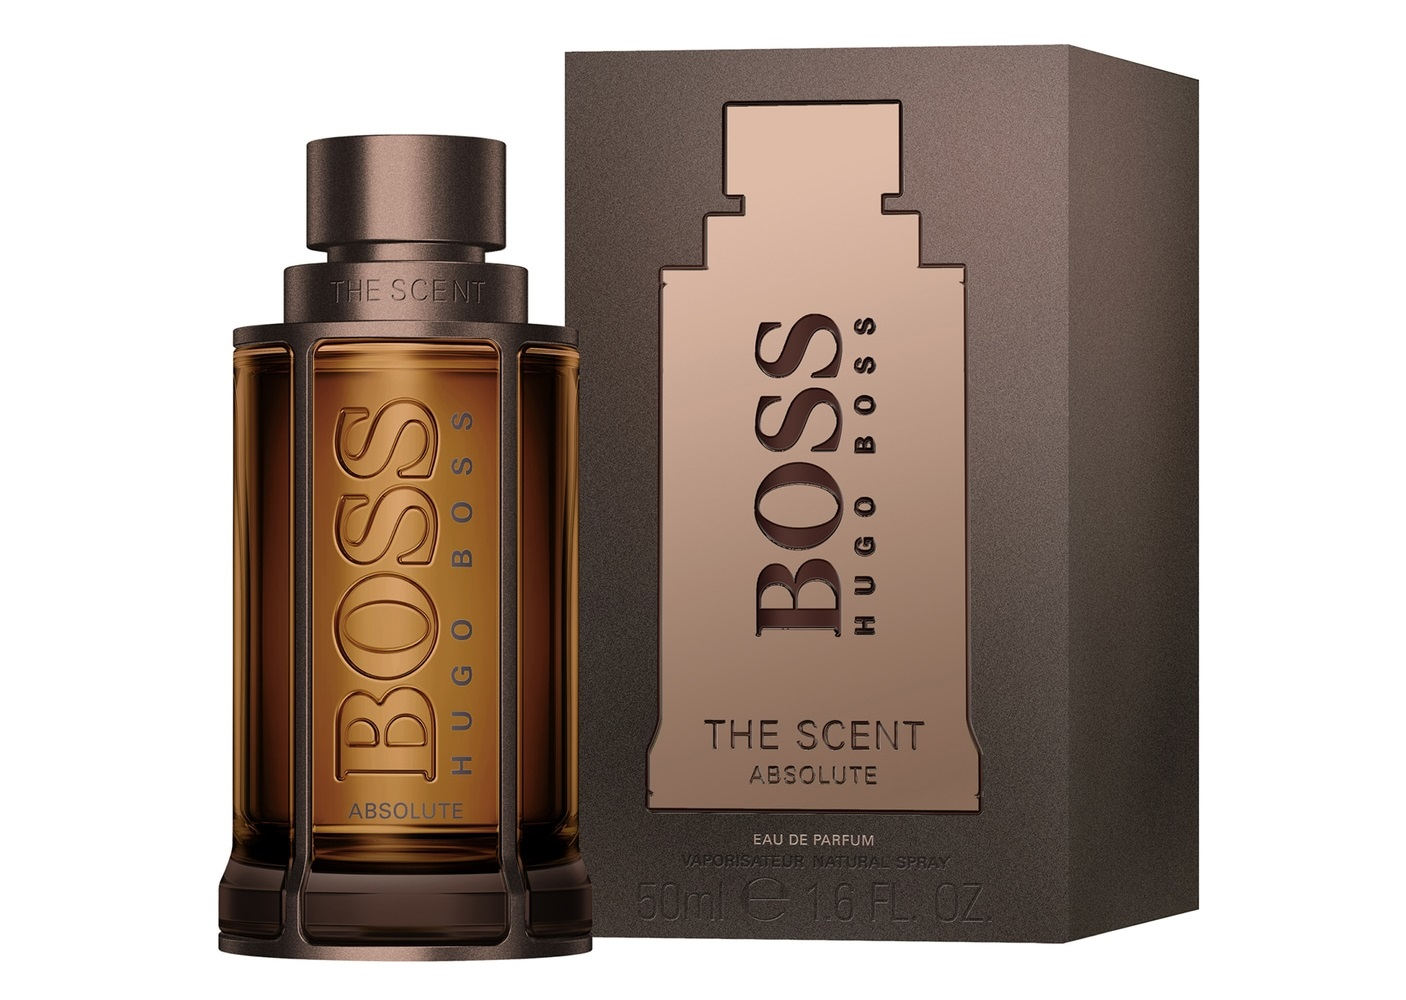 Hugo Boss The Scent Absolute 50 mL